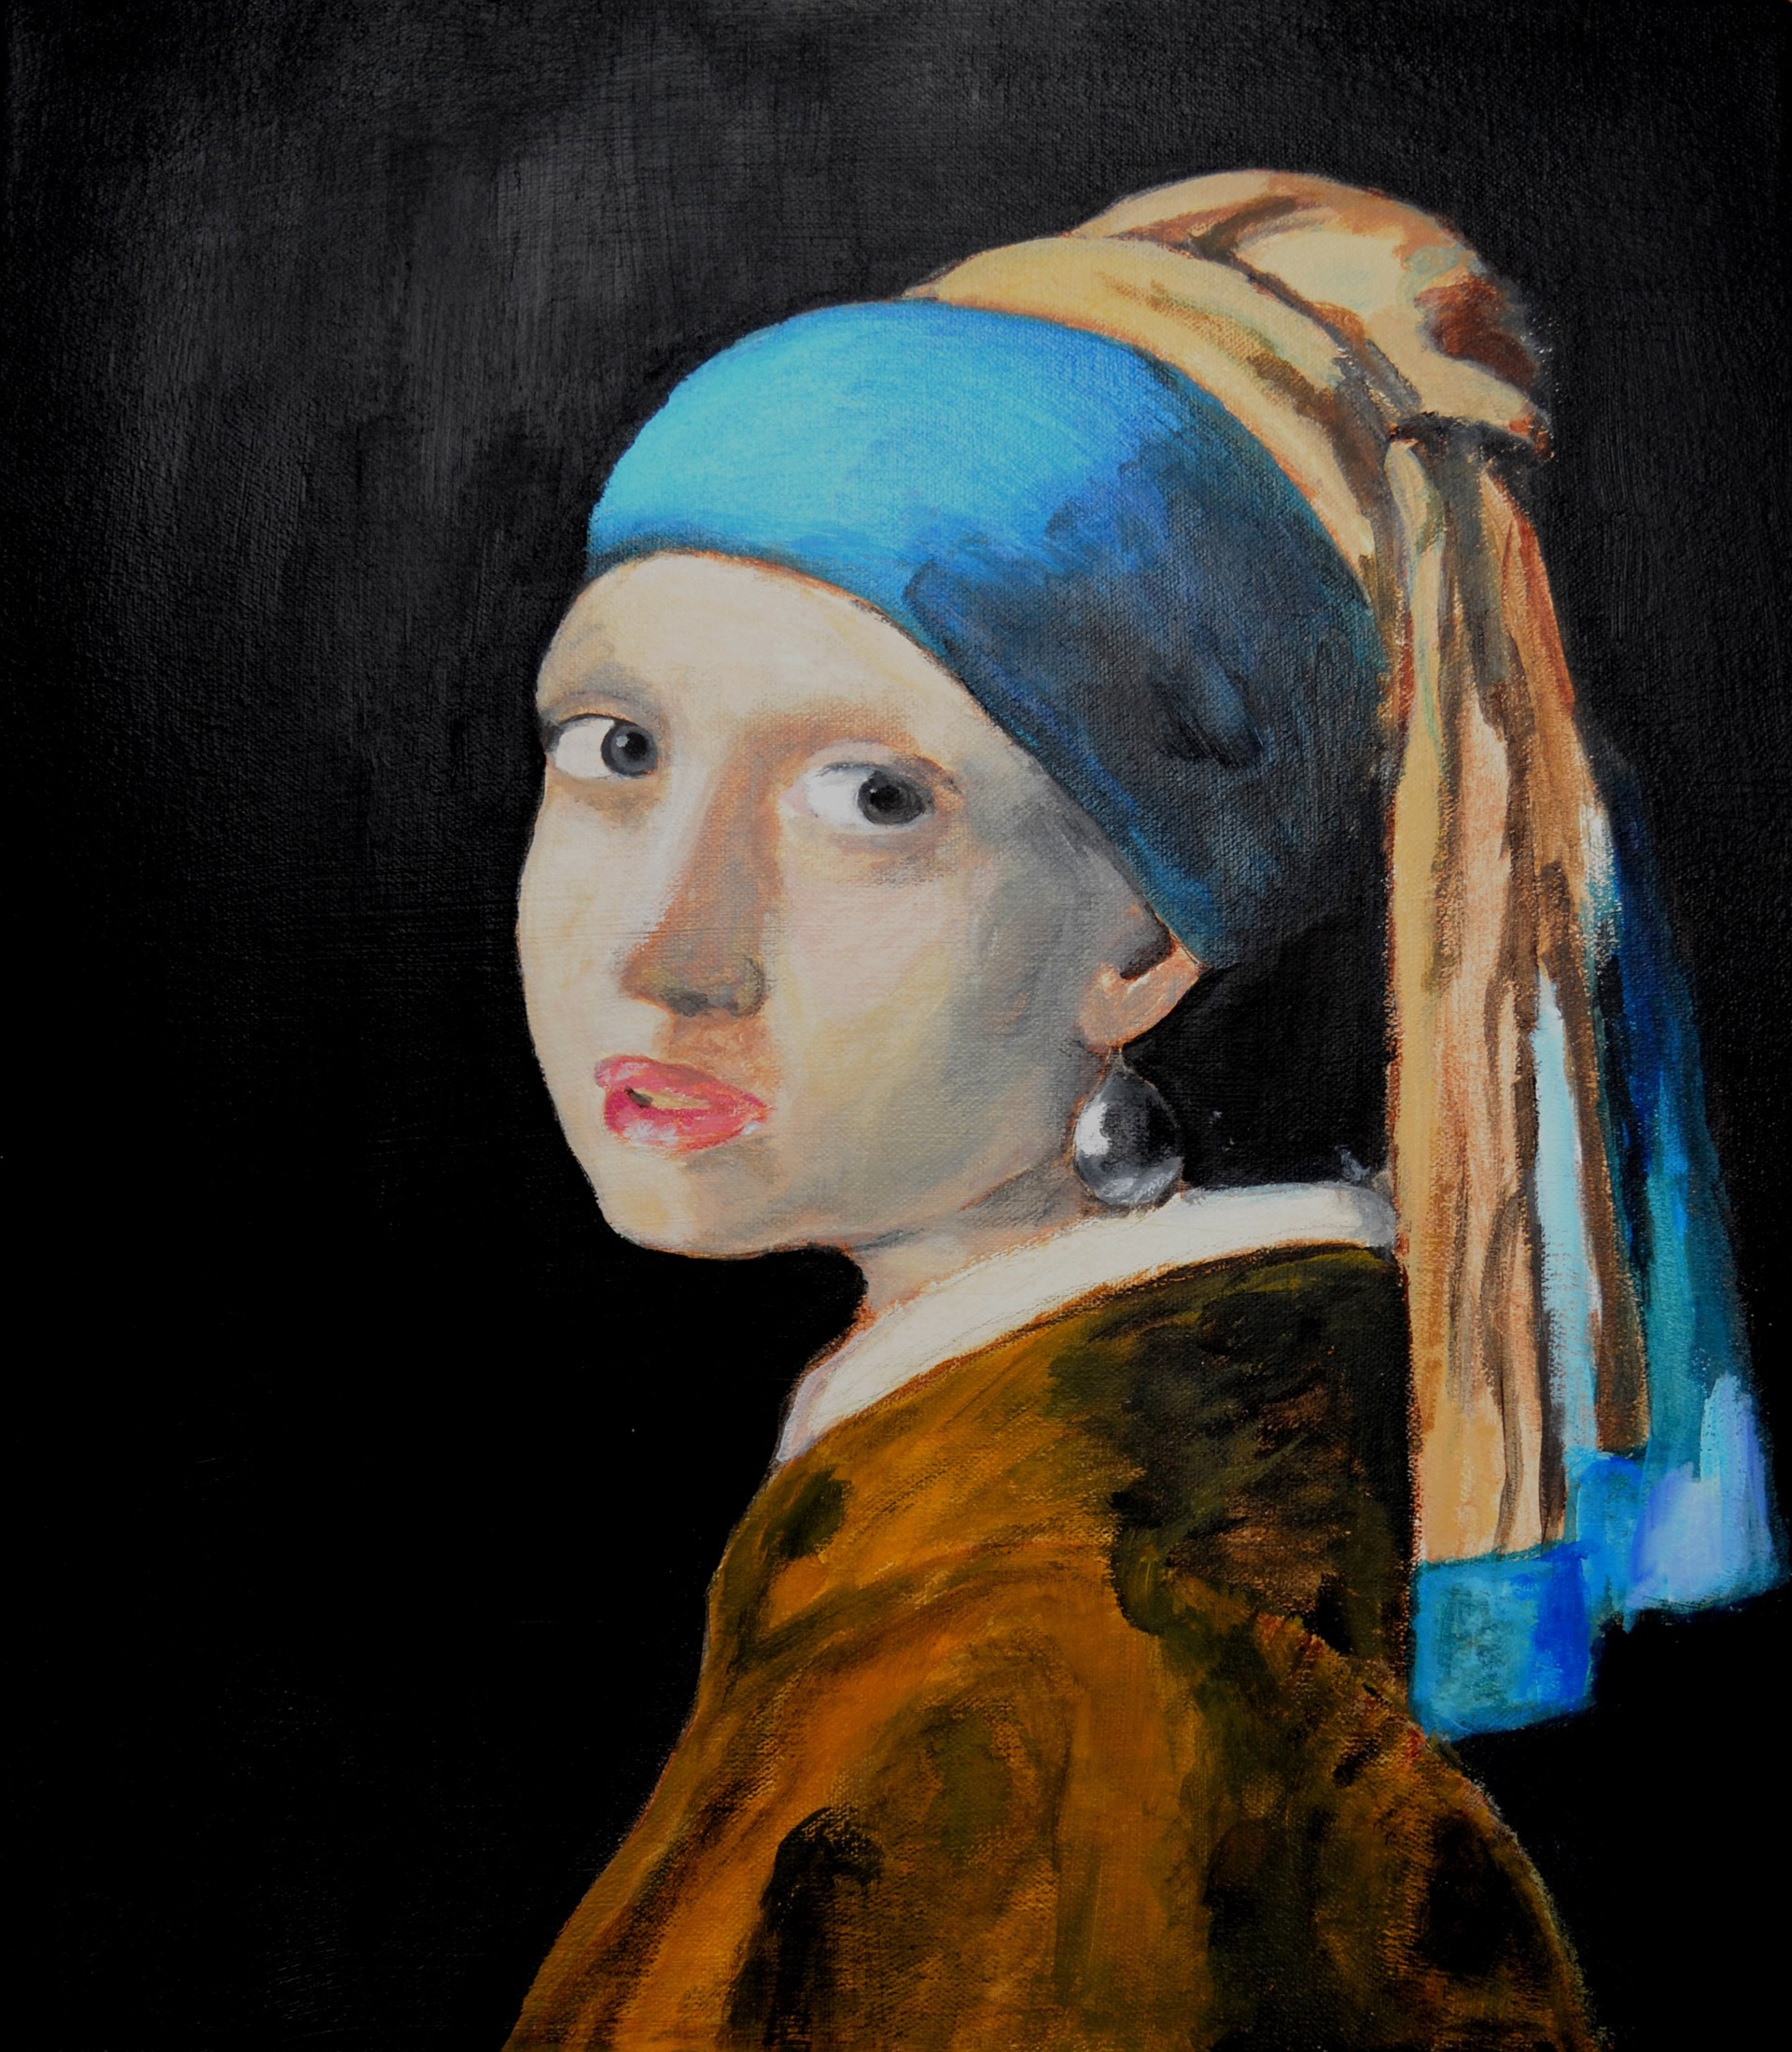 Mallory Stillman after Vermeer, Girl with a Pearl Earring, acrylic on canvas, 2016